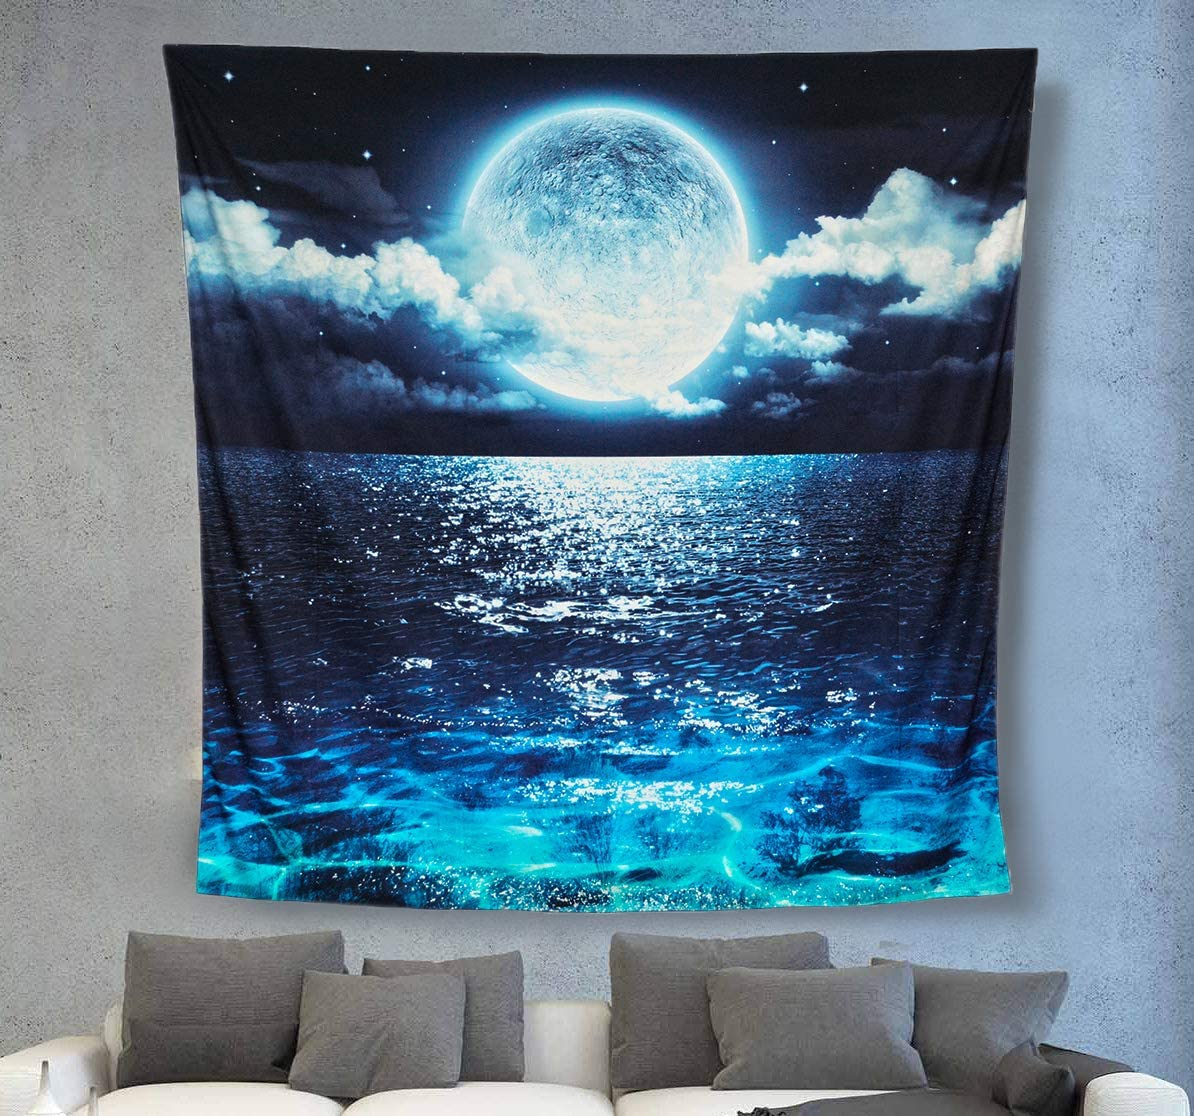 ACRAFT Wall Attention brand Tapestry Moon Ocean New York Mall Bedroom Hanging for Stars B